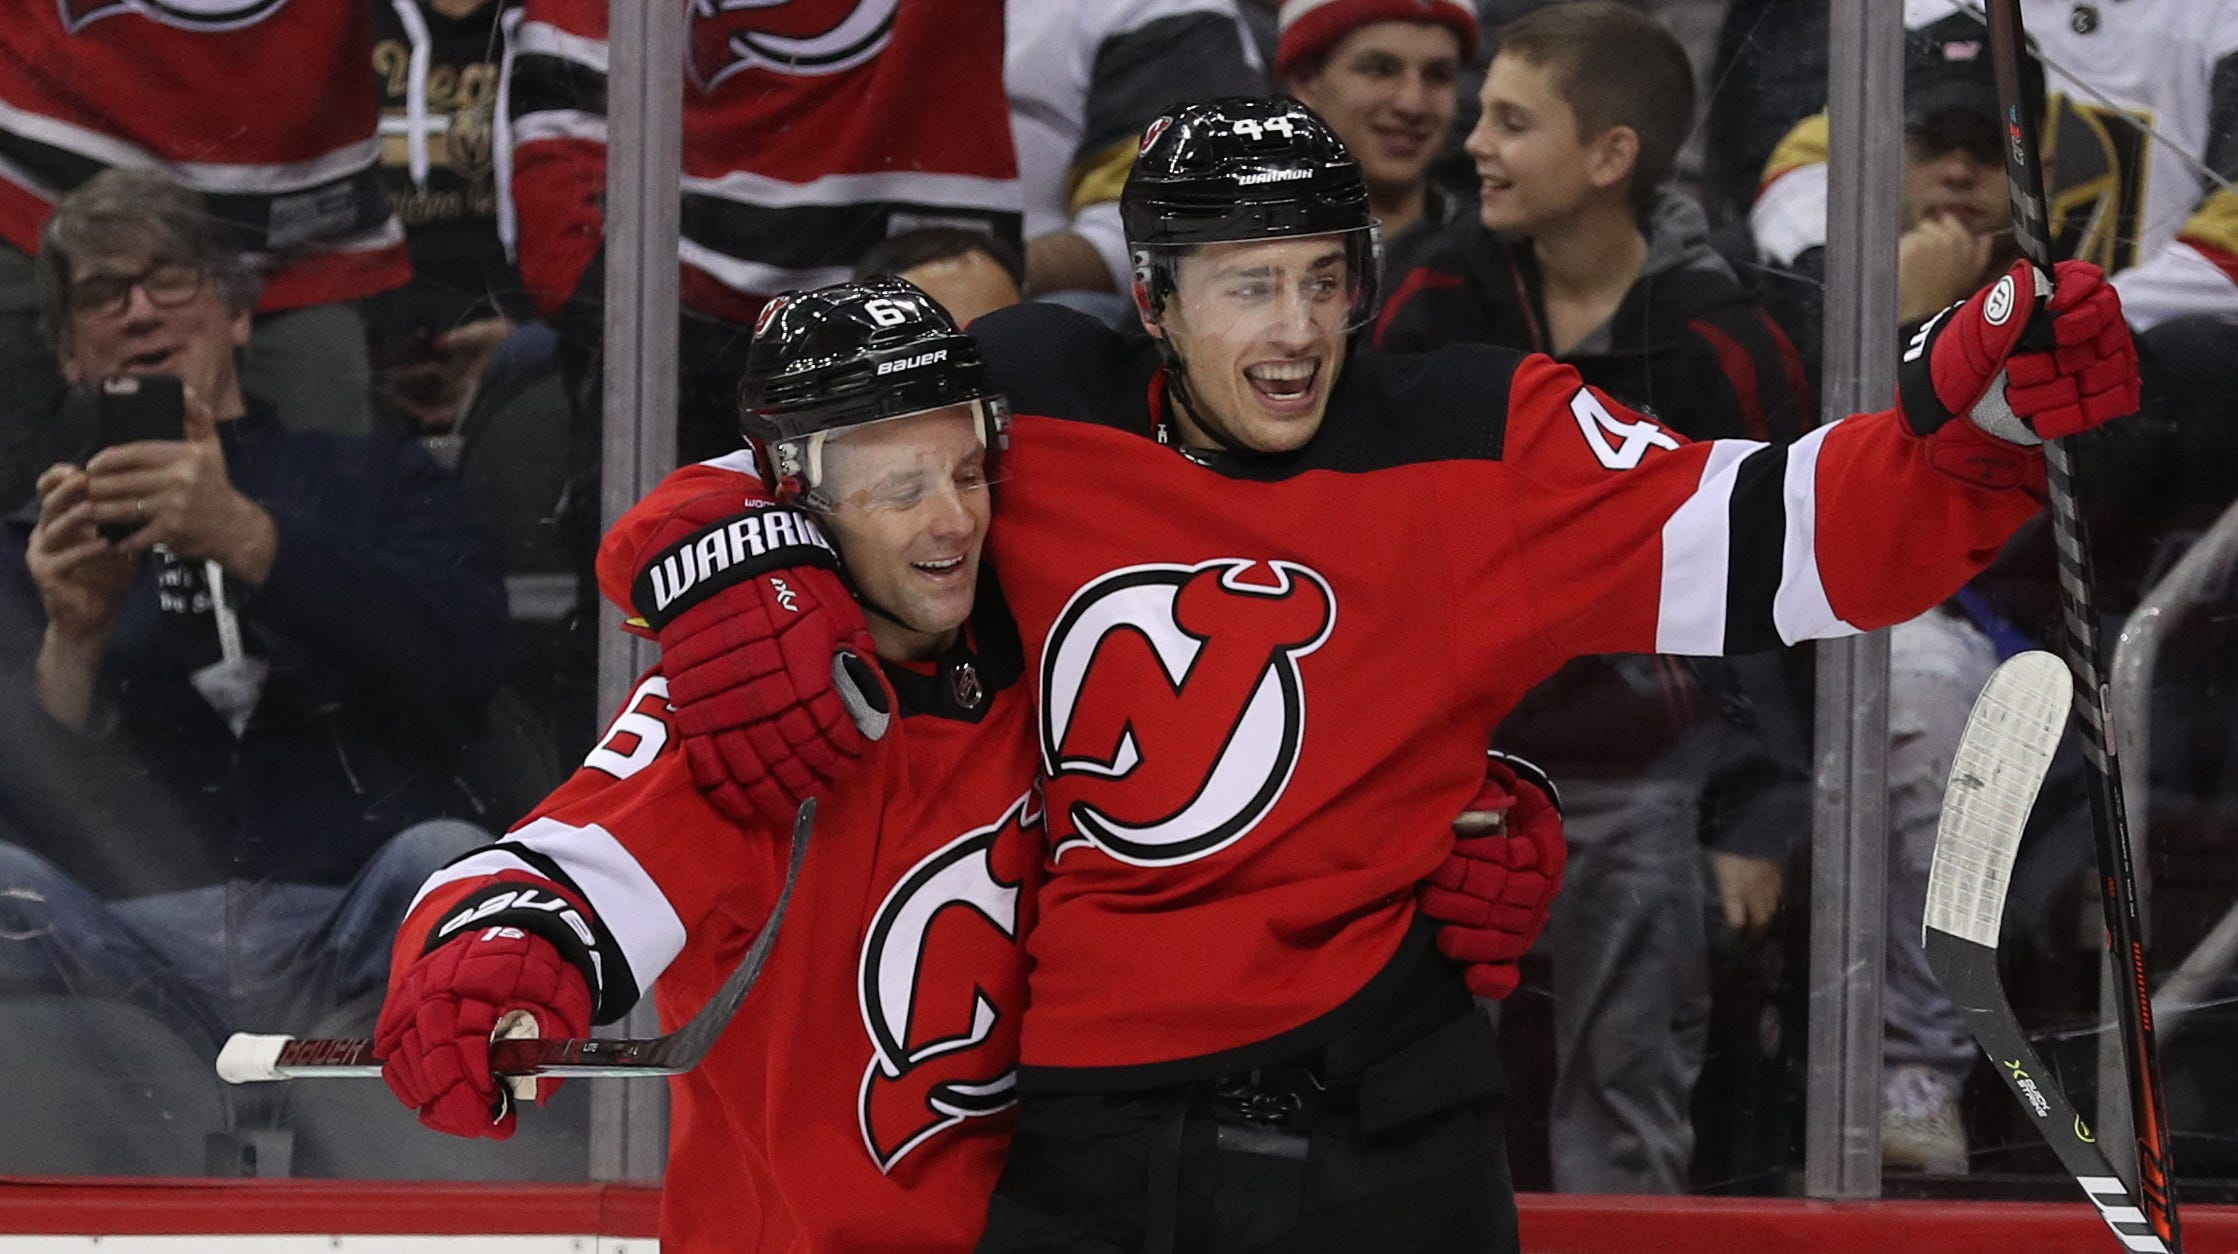 New Jersey Devils left wing Miles Wood (44) celebrates his goal during the second period of their game against the Vegas Golden Knights at Prudential Center.